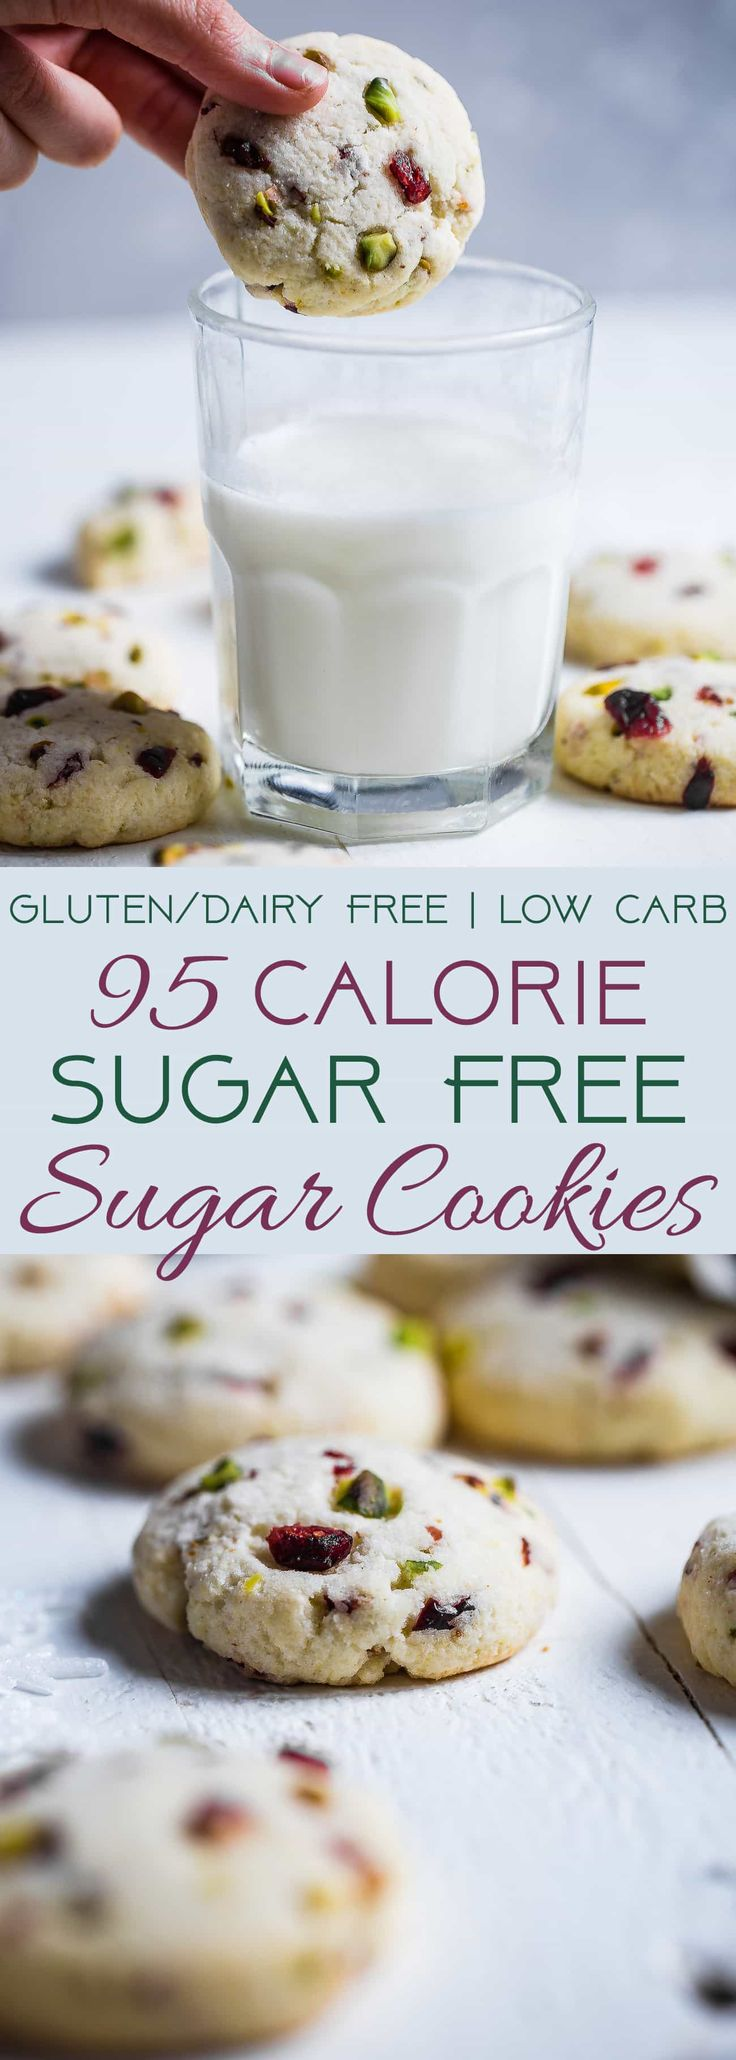 Gluten Free Sugar Free Sugar Cookies - These quick and easy, CHEWY sugar free sugar cookies have tangy and crunchy cranberries and pistachios! They're a healthier Christmas treat for only 95 calories! | Foodfaithfitness.com | @FoodFaithFit